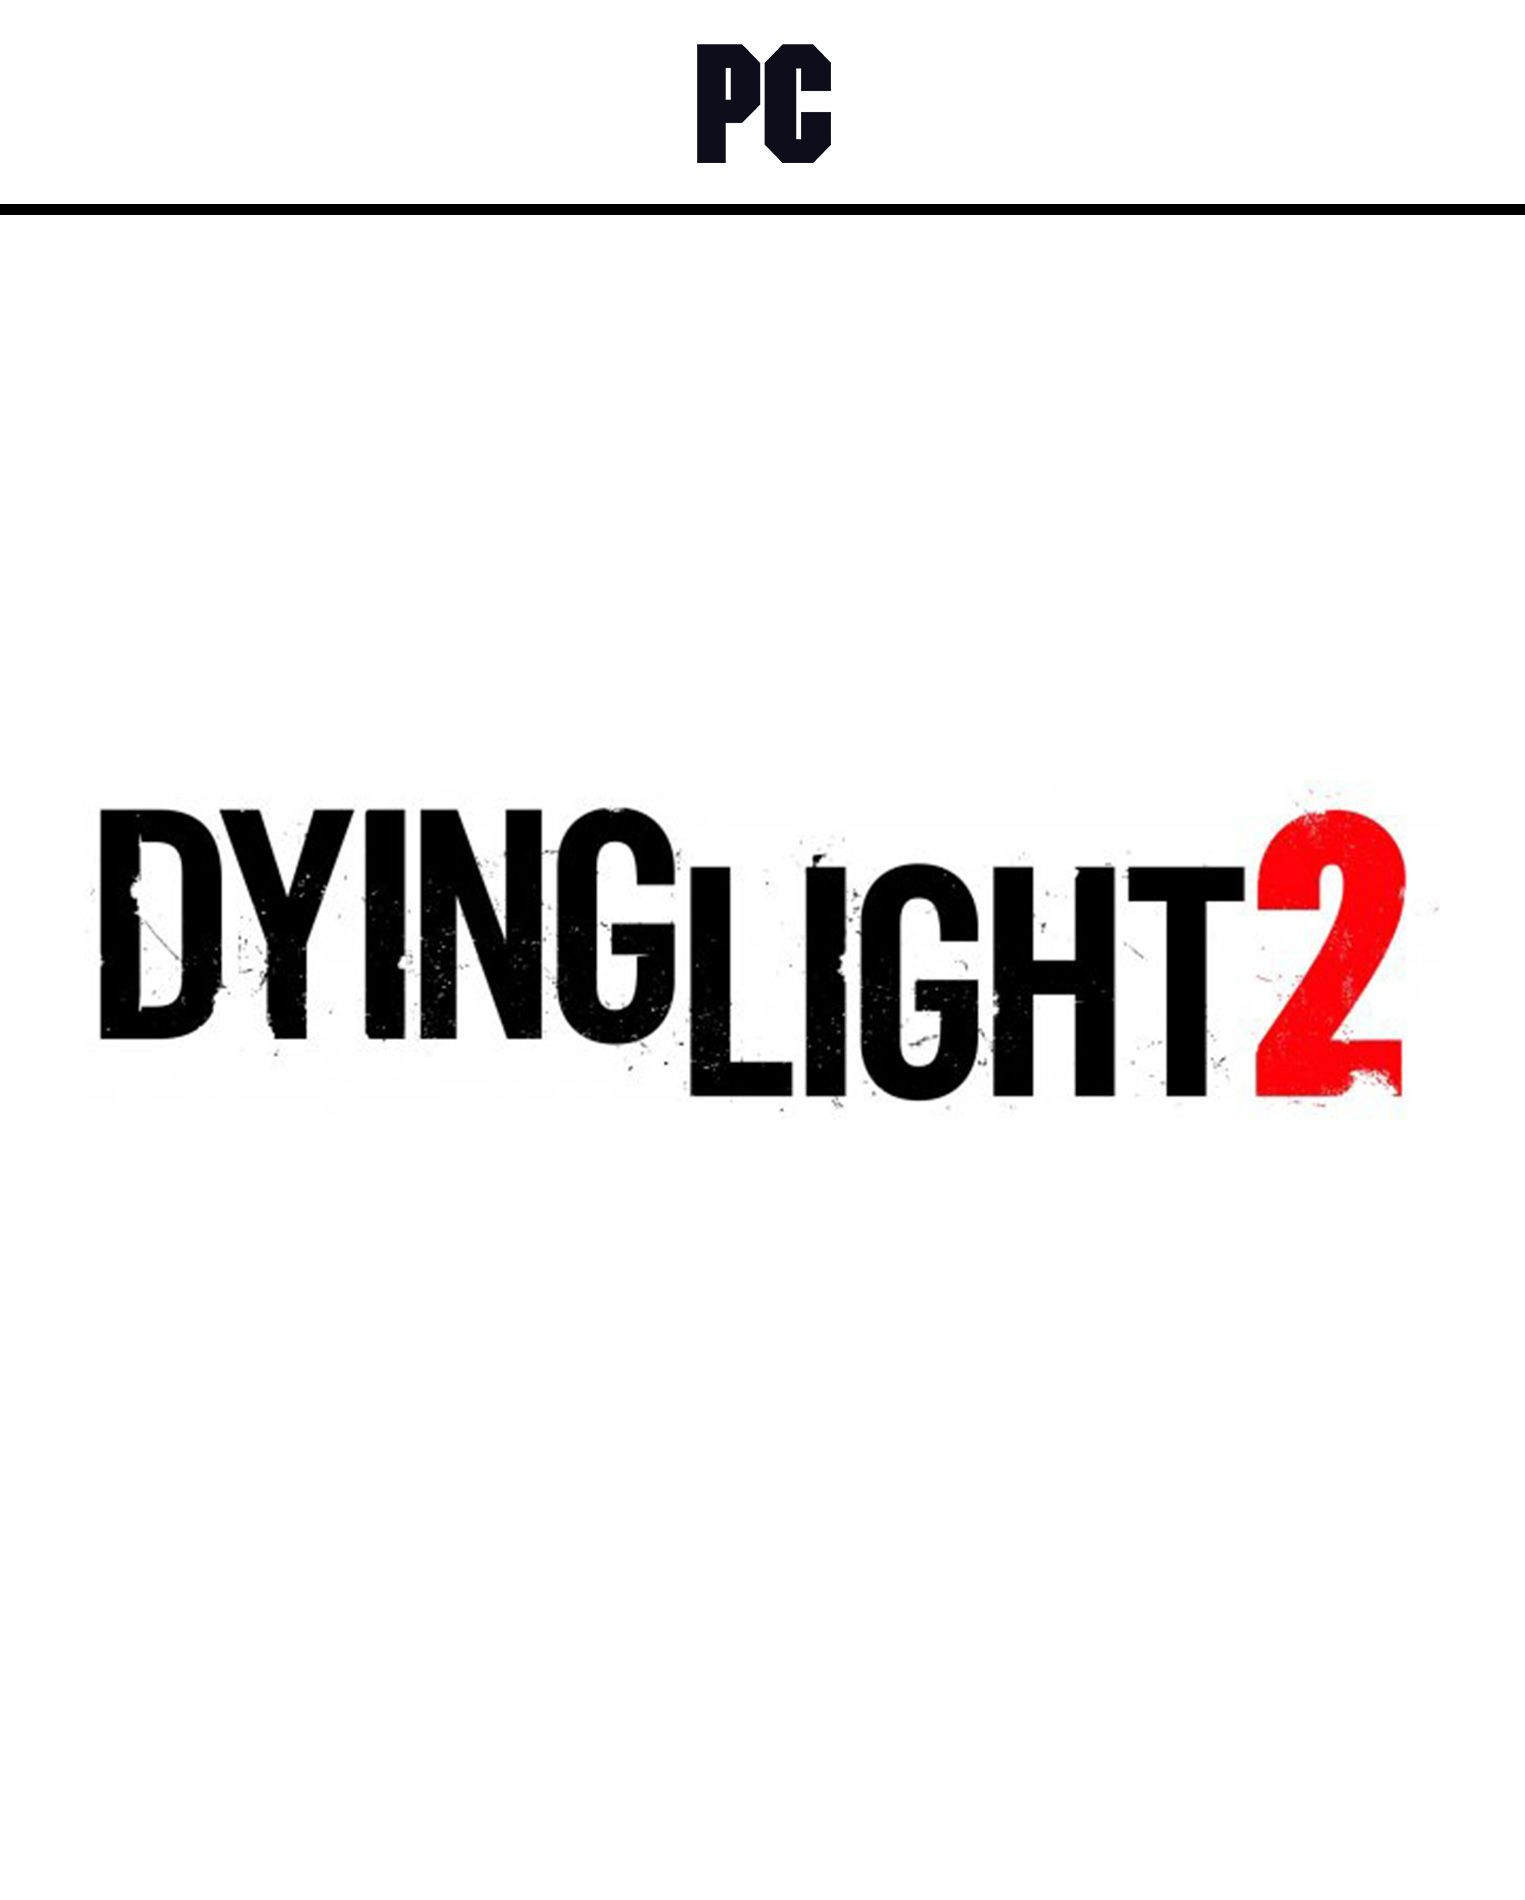 Dying Light 2 (PC) - 1